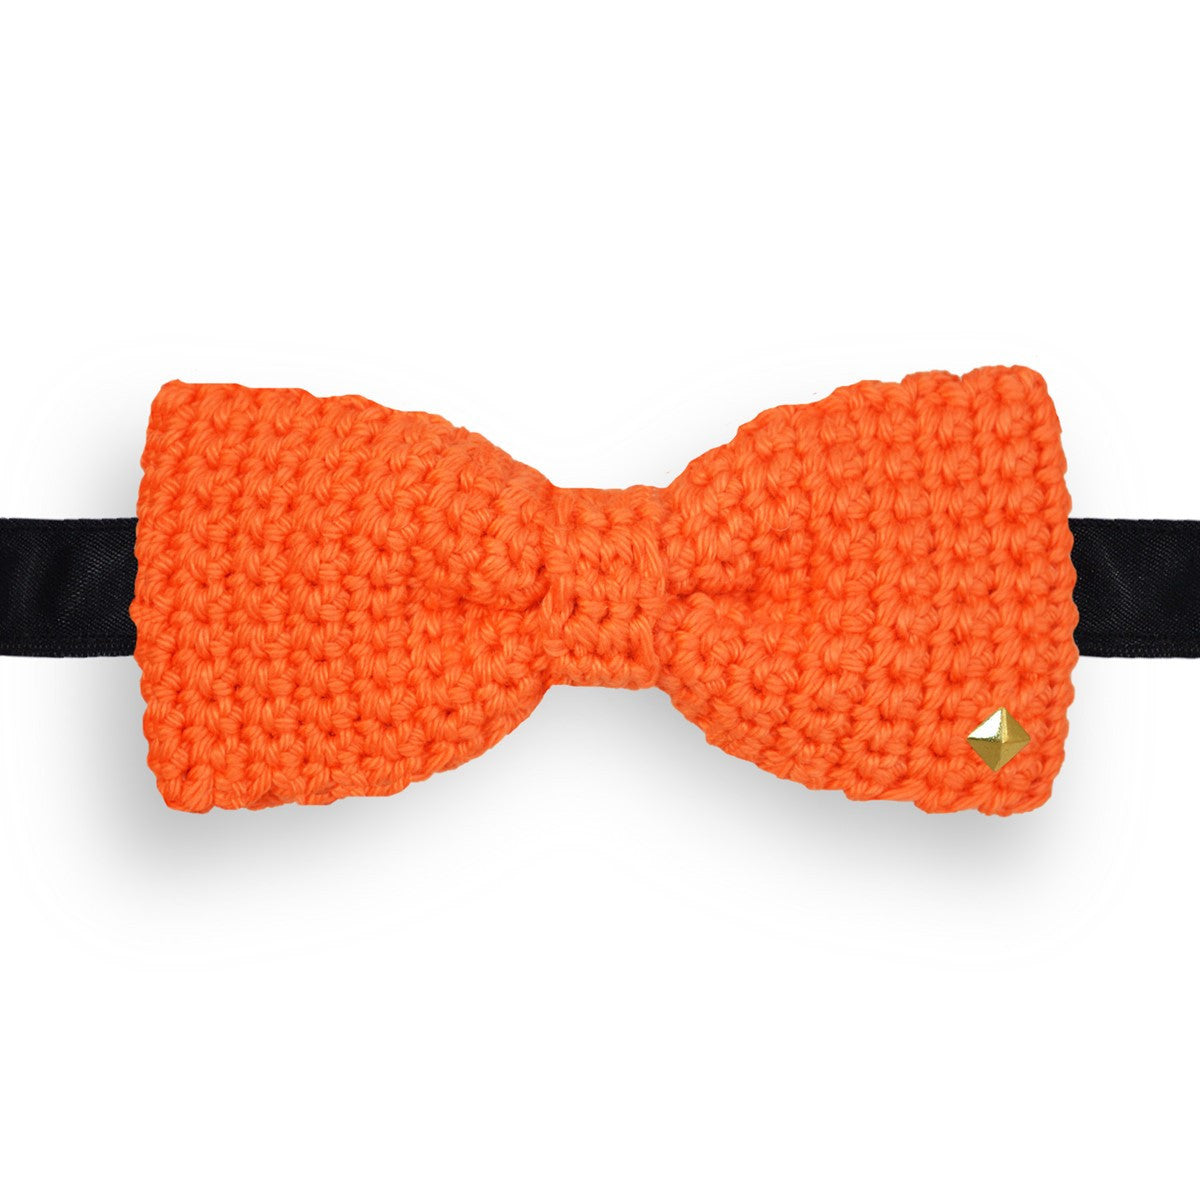 Noeud papillon ciel au crochet Zenith orange